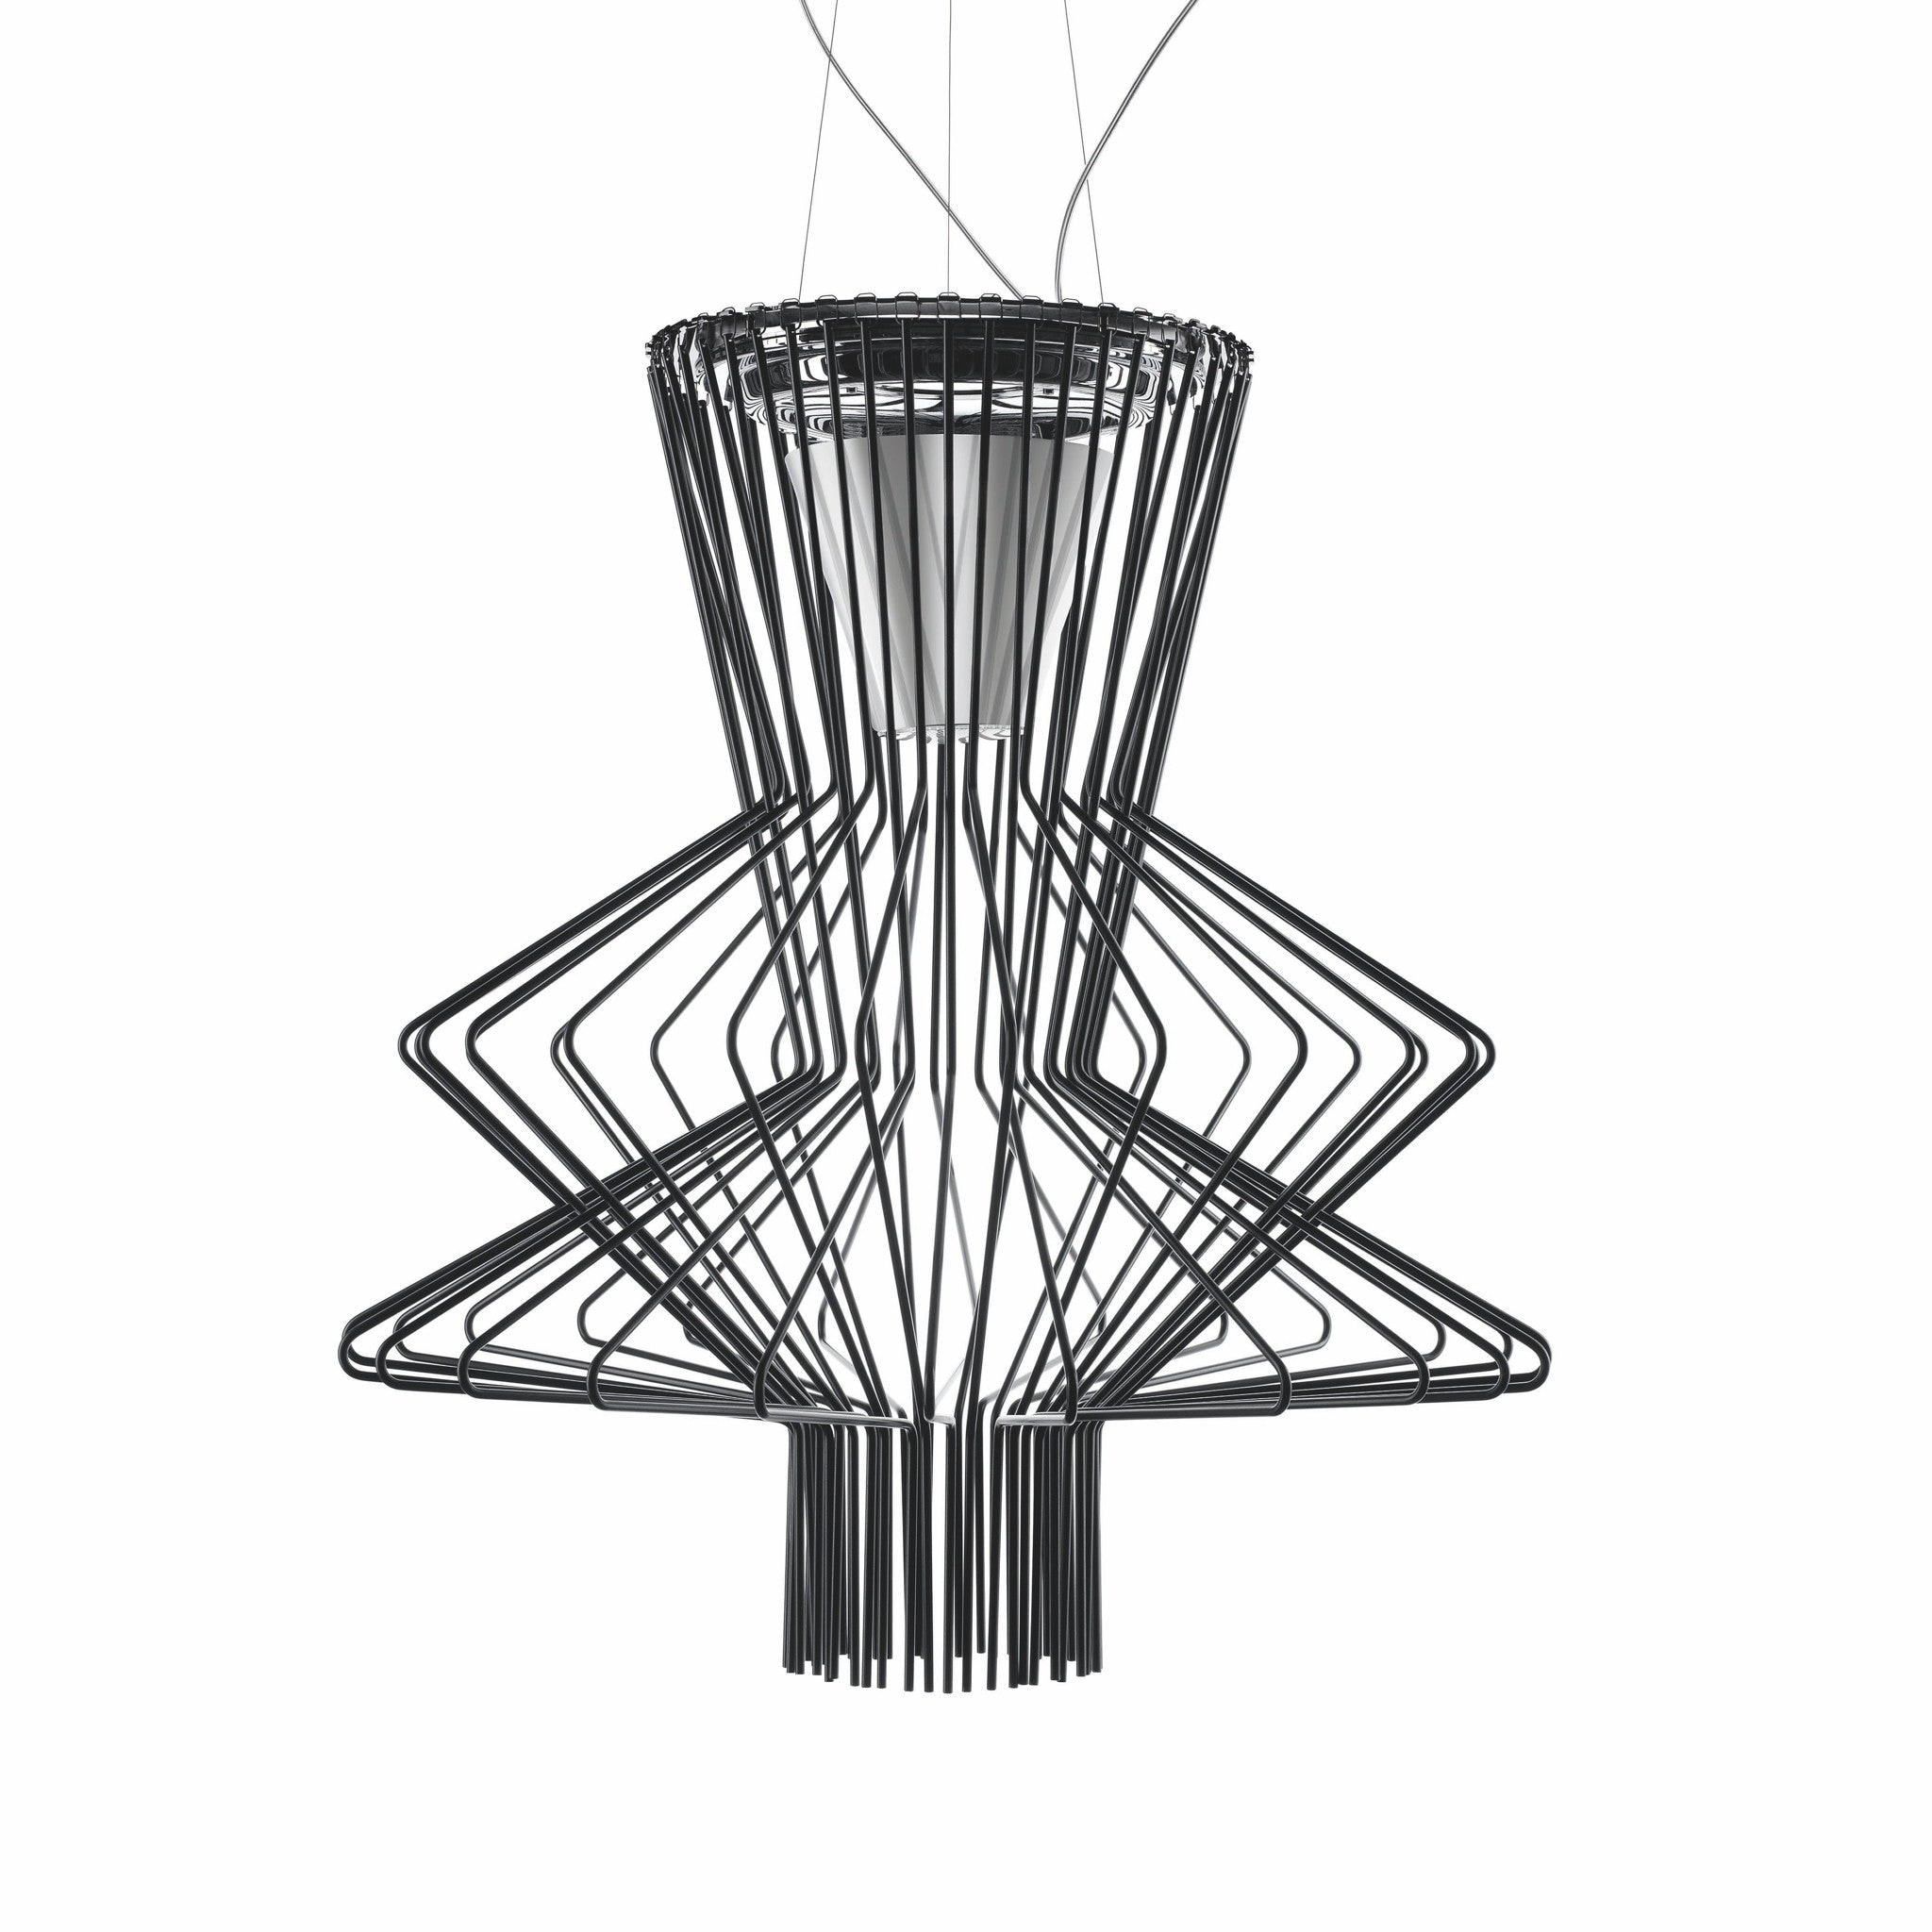 Allegro Pendant Lamp by Atelier Oï